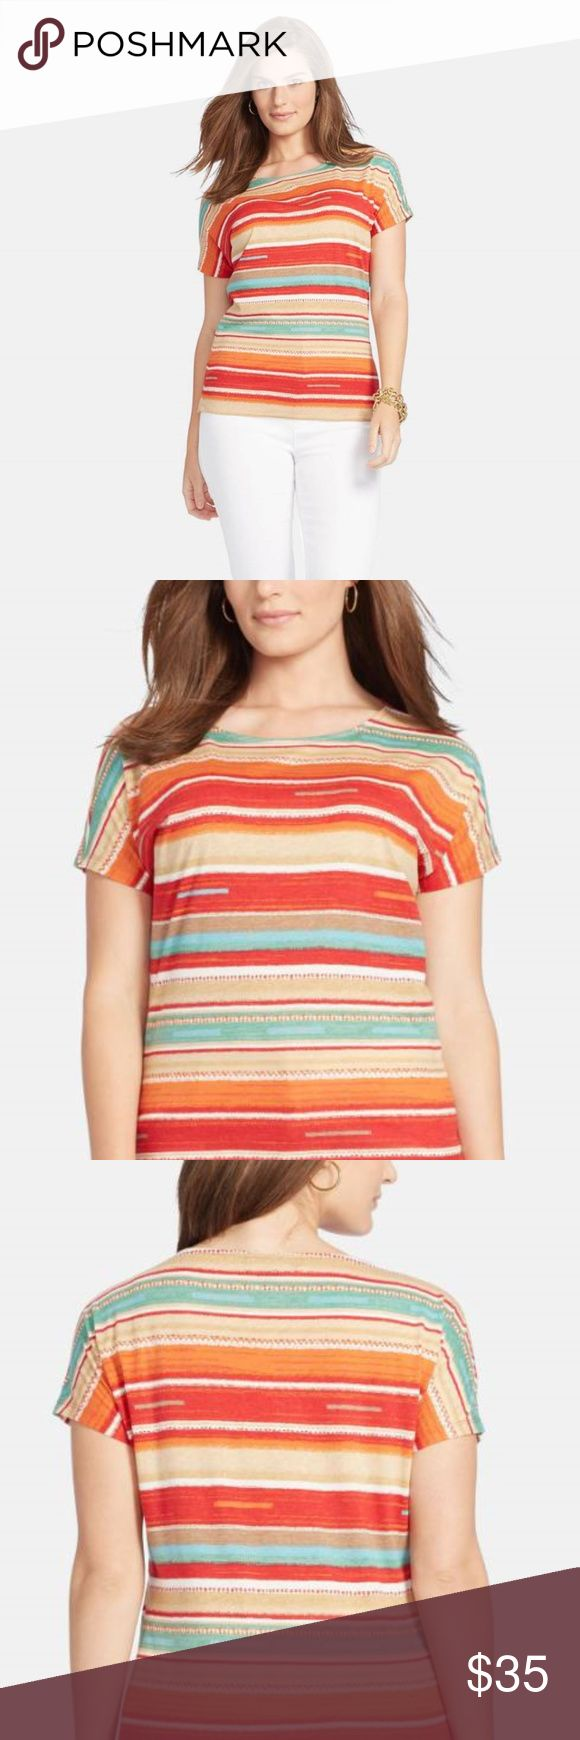 Lauren Ralph Lauren Stripe Ballet Neck Tee, Size 3 Gorgeous Southwestern-inspired colors refresh a lightweight cotton tee designed with a ballet neckline and short dolman sleeves. 100% cotton. Machine wash cold, tumble dry low. By Lauren Ralph Lauren; imported. Size 3X New with Tags MSRP $64.50 Lauren Ralph Lauren Tops Tees - Short Sleeve